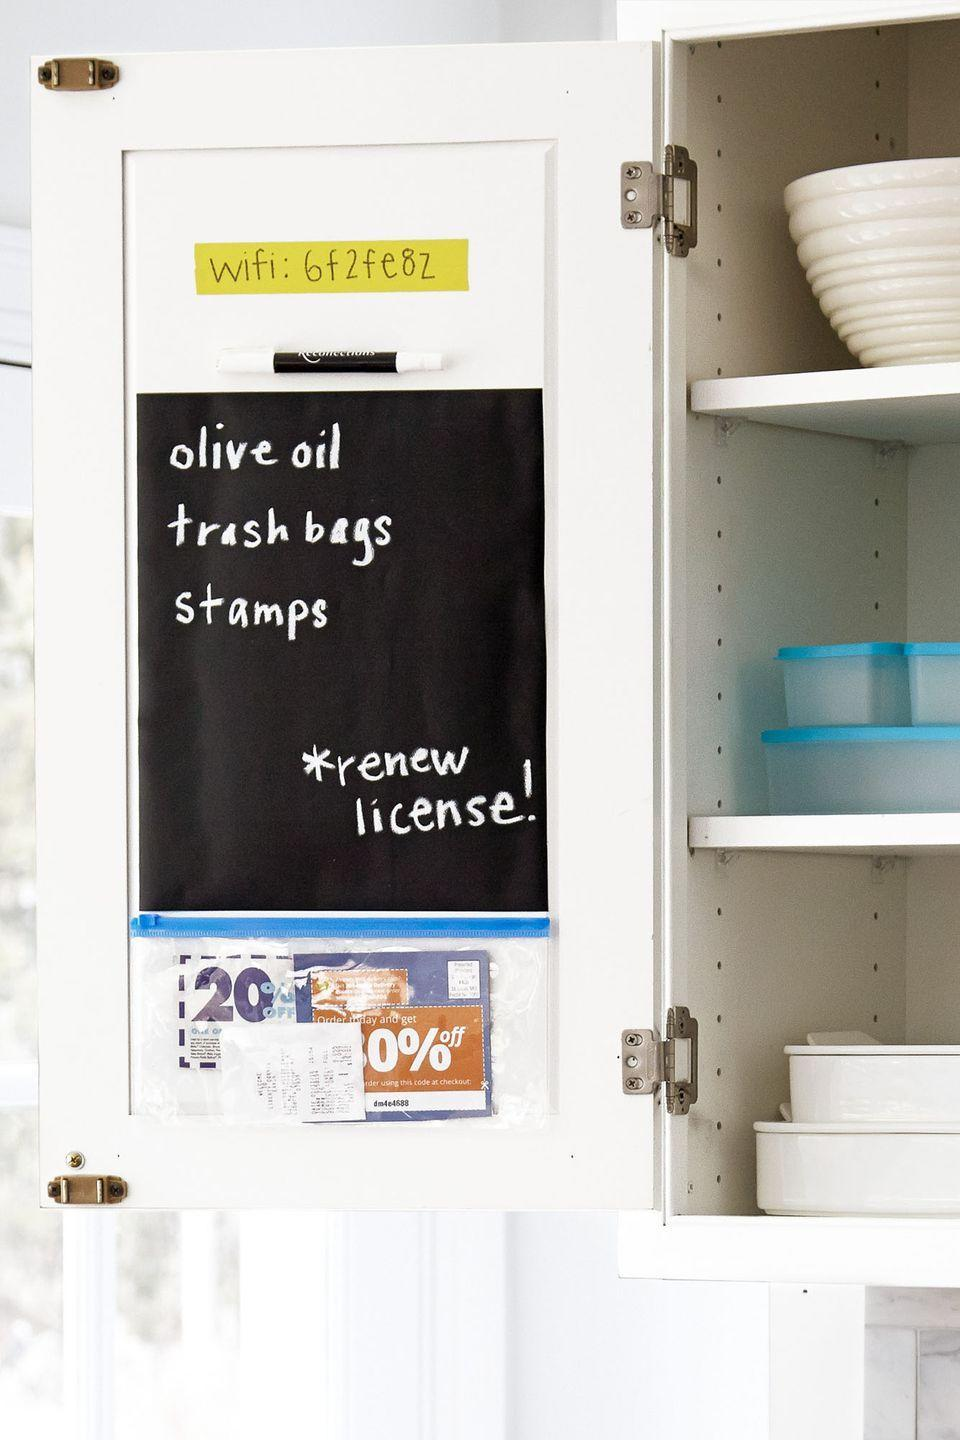 """<p>Turn the back of a cabinet into a makeshift shopping station with an adhesive pocket for coupons and chalkboard decal for shopping lists. And hey, you can even include your home's wifi password in case for the next time the kids' friends come over.</p><p><a class=""""link rapid-noclick-resp"""" href=""""https://www.amazon.com/Smead-Self-Adhesive-Pockets-Different-68167/dp/B0186KGEZK/?tag=syn-yahoo-20&ascsubtag=%5Bartid%7C10063.g.36459111%5Bsrc%7Cyahoo-us"""" rel=""""nofollow noopener"""" target=""""_blank"""" data-ylk=""""slk:SHOP SELF-ADHESIVE POCKET ORGANIZERS"""">SHOP SELF-ADHESIVE POCKET ORGANIZERS</a> </p>"""